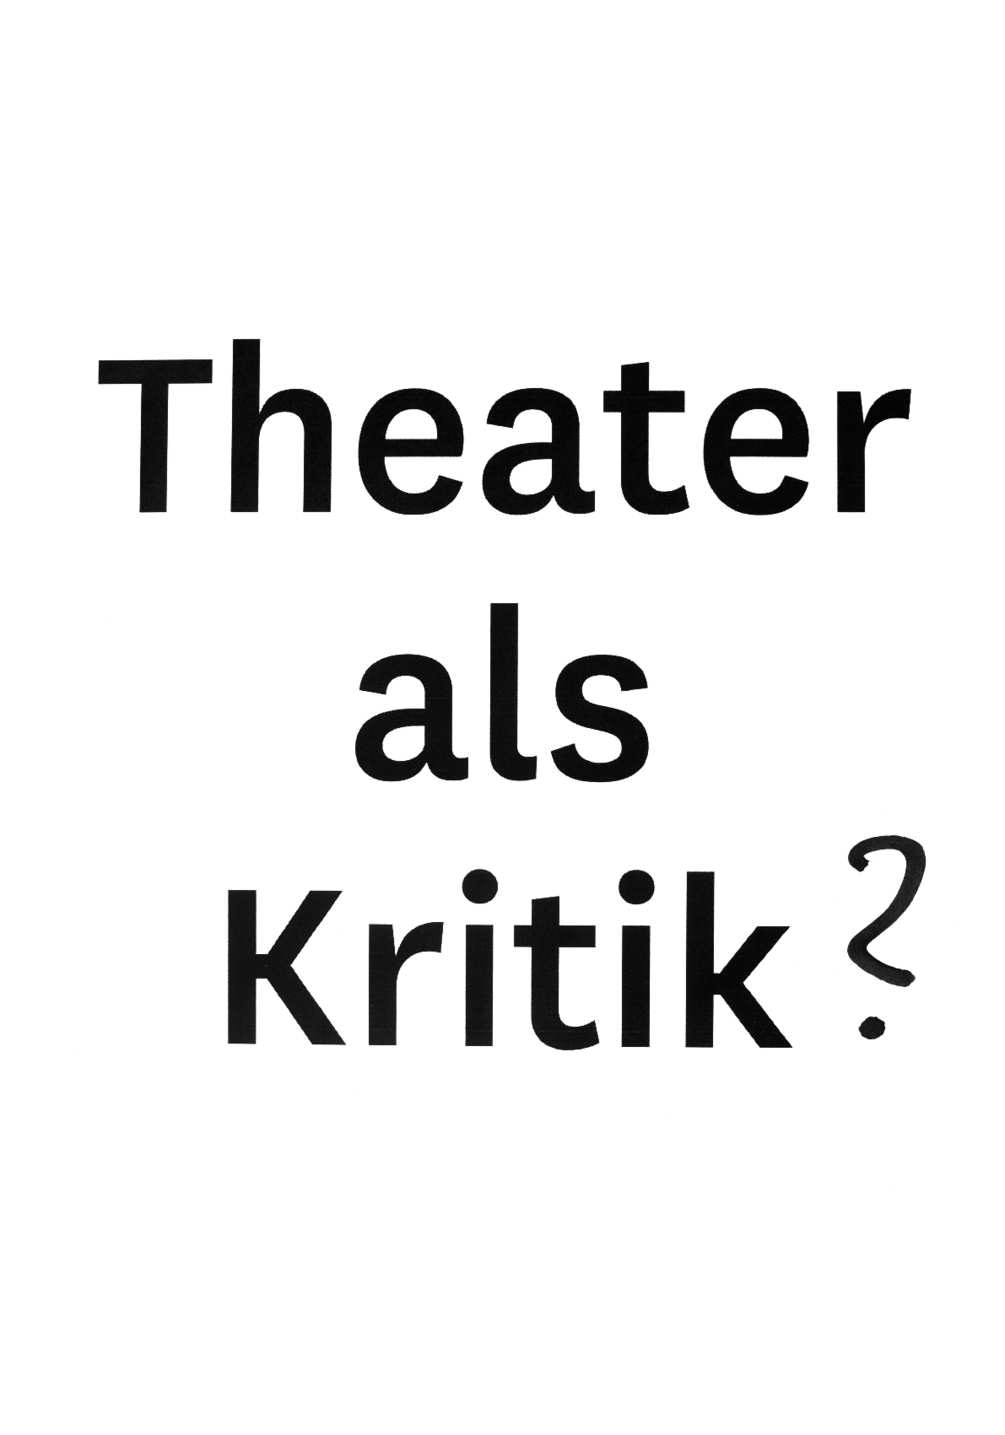 theater-as-critique-slip-23-1005x1435px